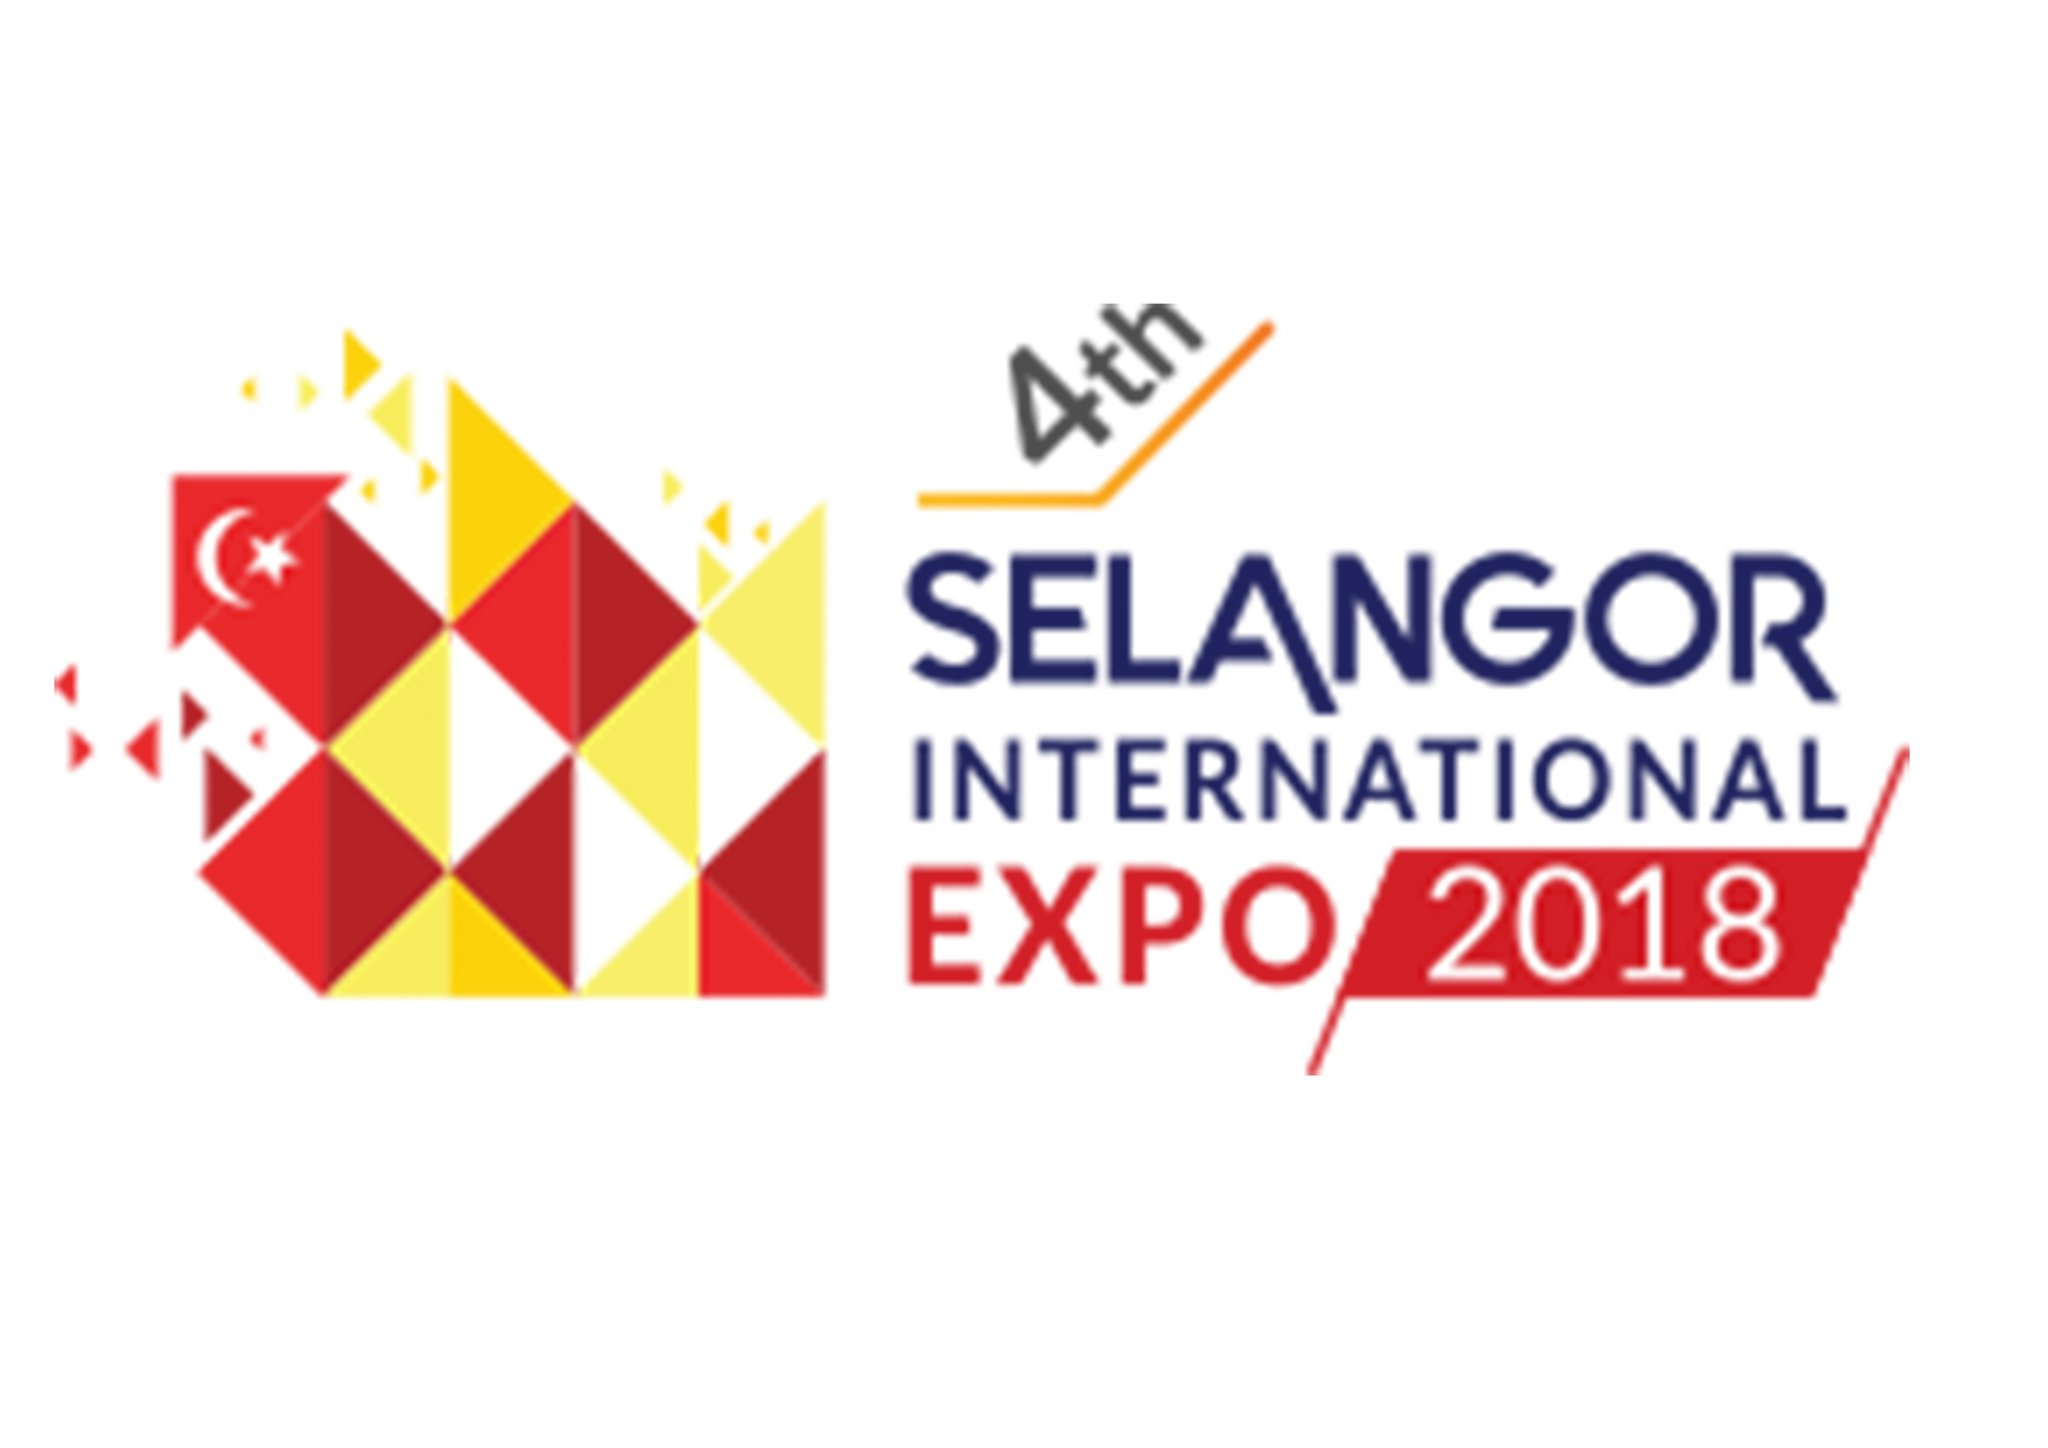 SELANGOR INTERNATIONAL EXPO 2018 (6th - 9th September 2018)